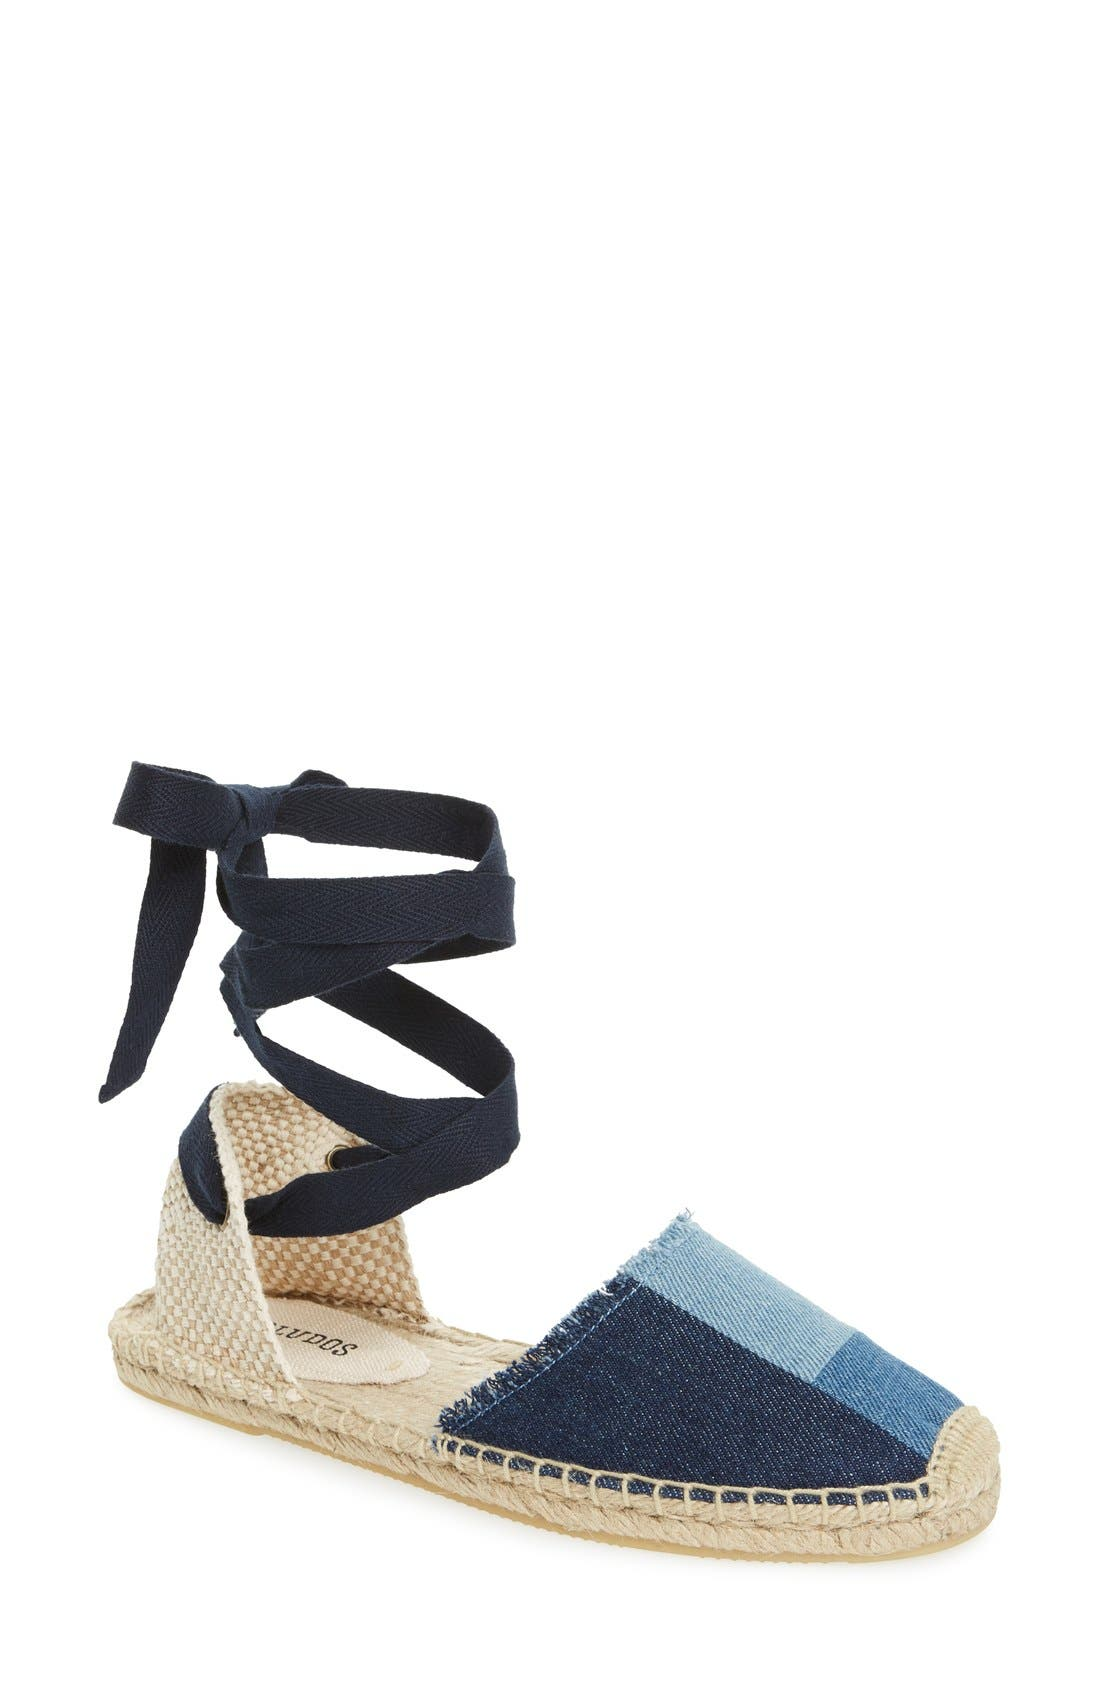 SOLUDOS Patchwork Ankle Wrap Espadrille